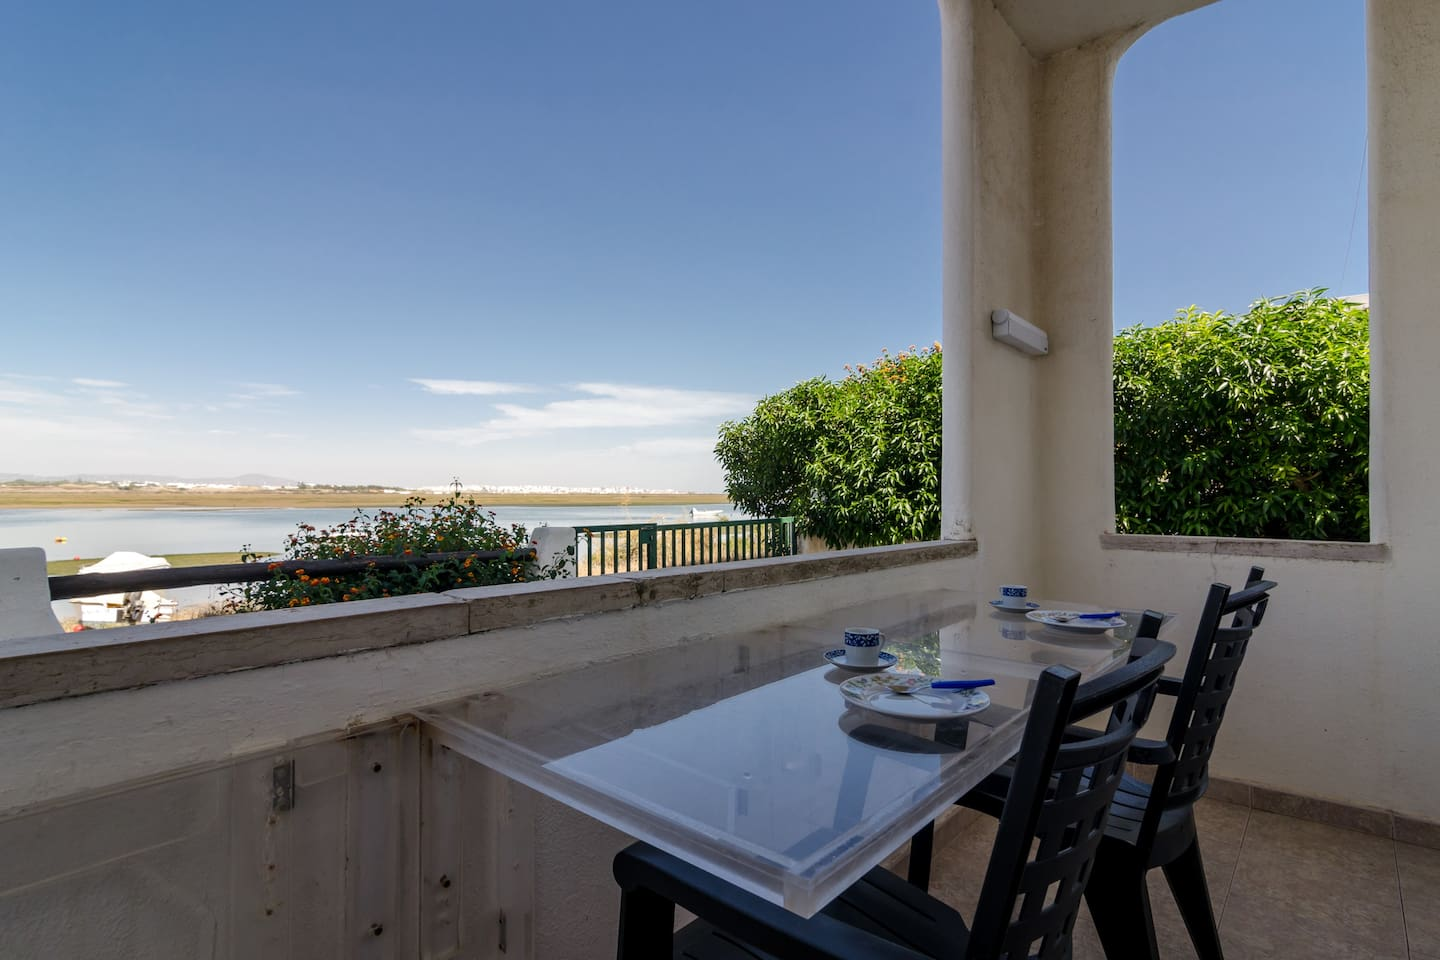 Balcony facing the Lagoon of the Natural Reserve Ria Formosa